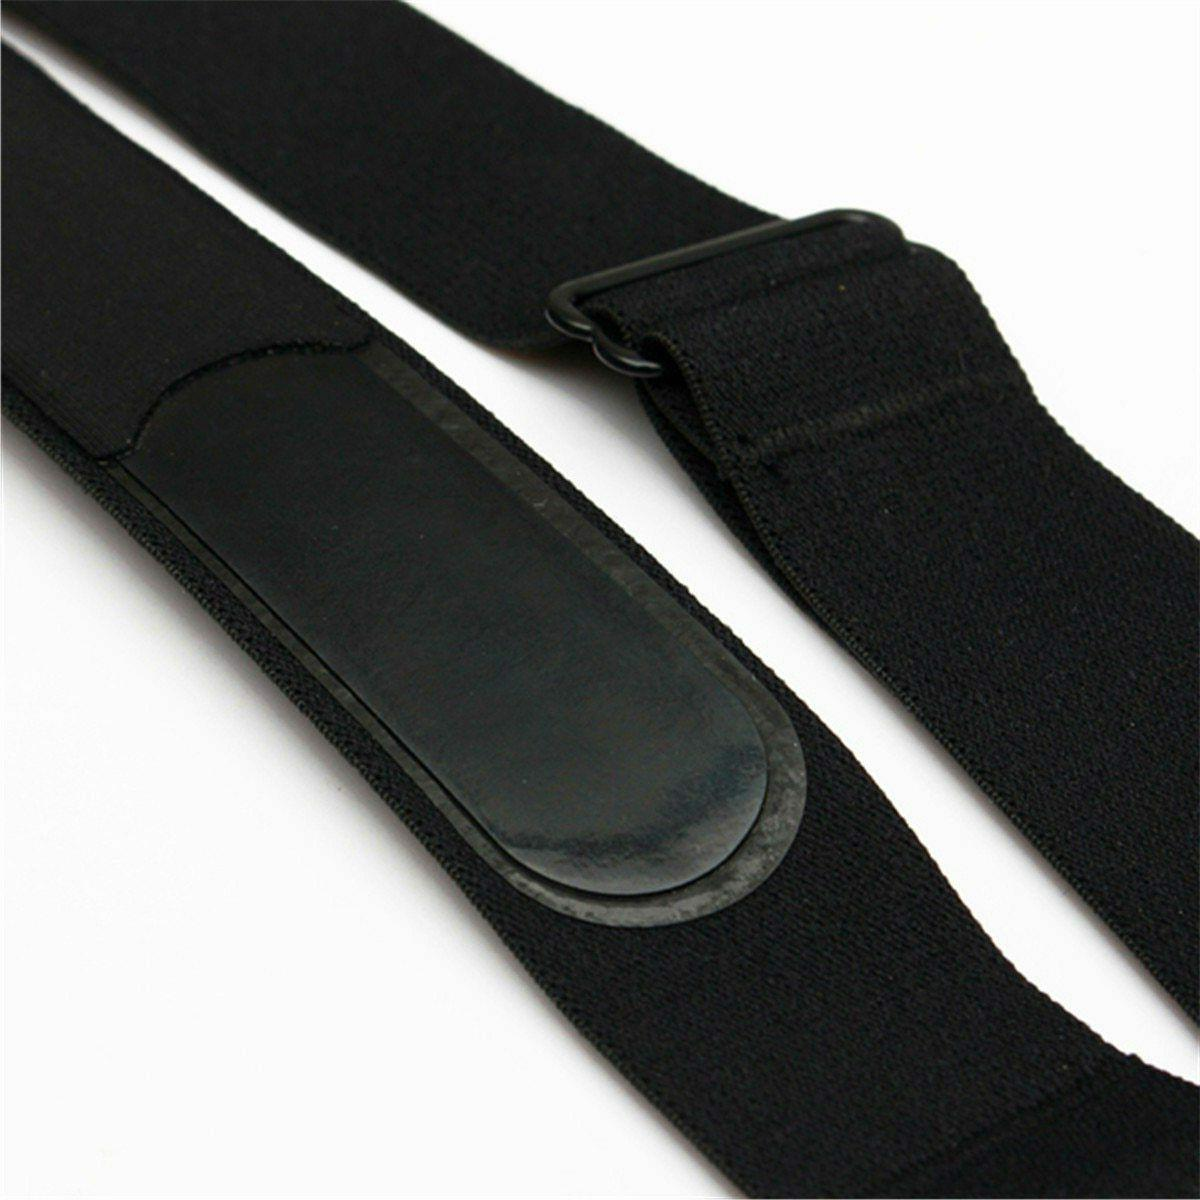 Chest belt soft strap for Wahoo, Garmin, Heart Rate monitor